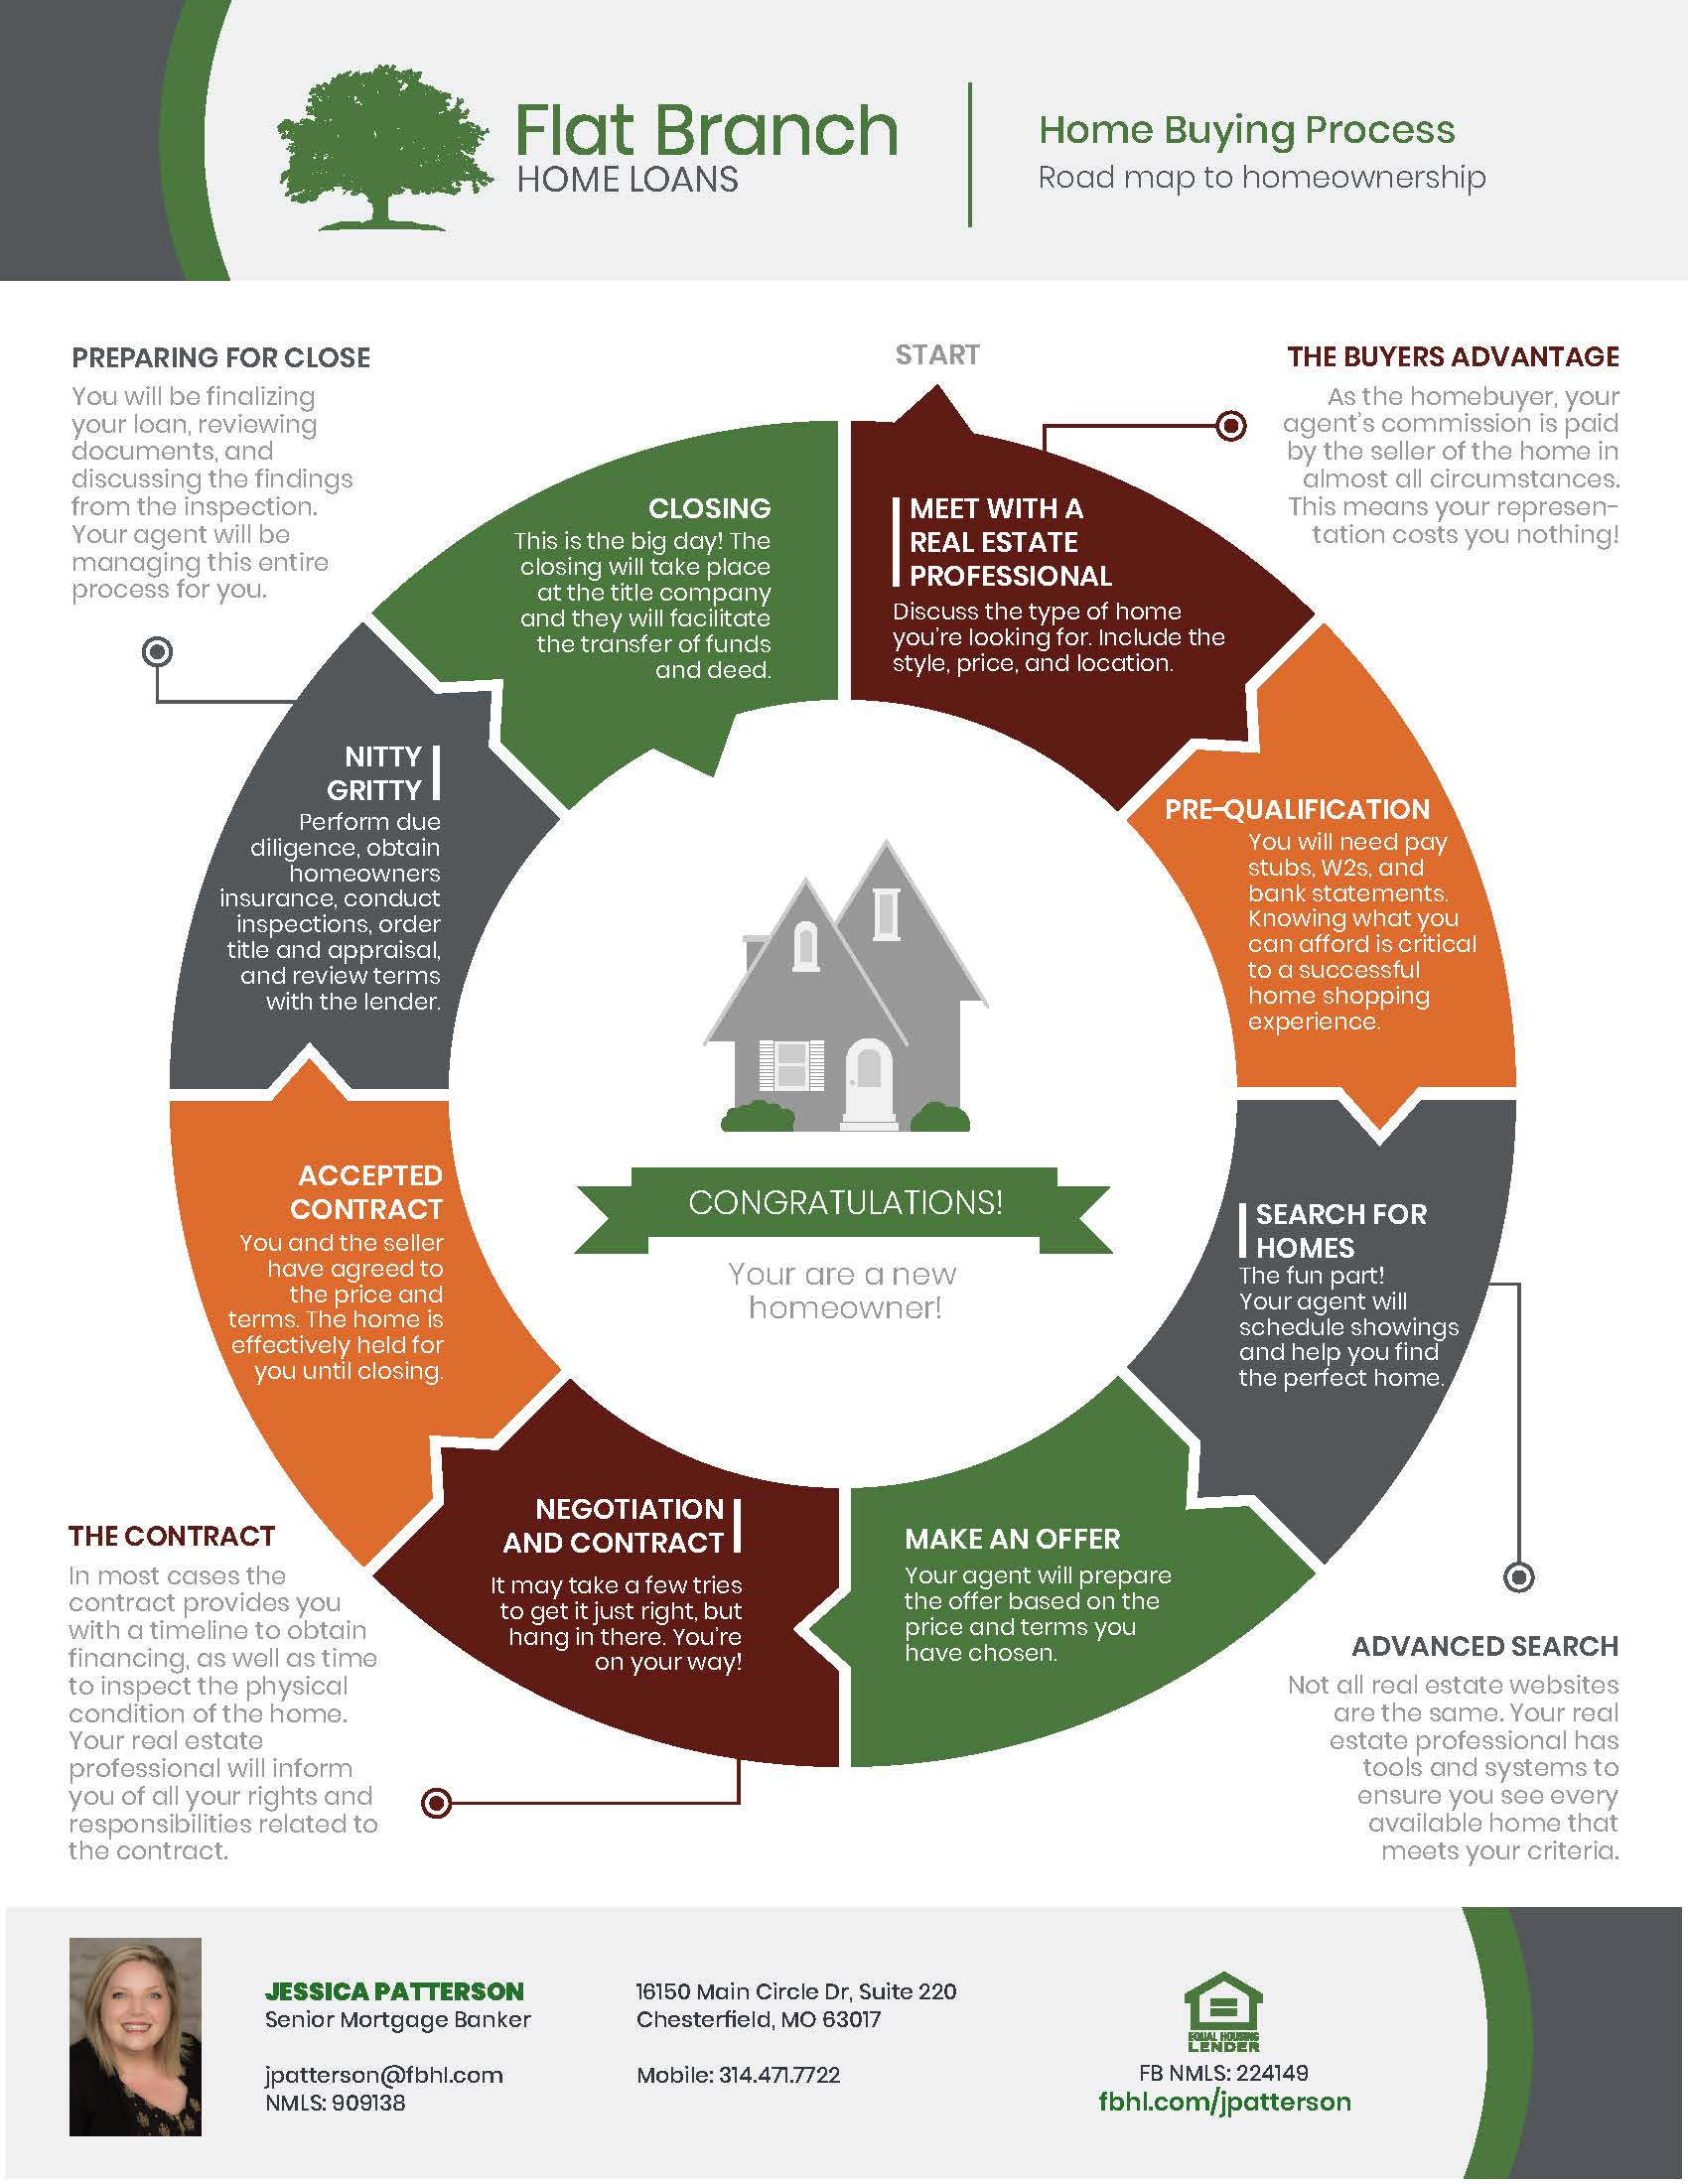 Home Buying Road Map | St. Louis, St. Charles and Jefferson ... on buying organization chart, buying process stages, buying process model, buying process service, strategy map, buying process chart, customer experience map, customer buying map, customer segmentation map,